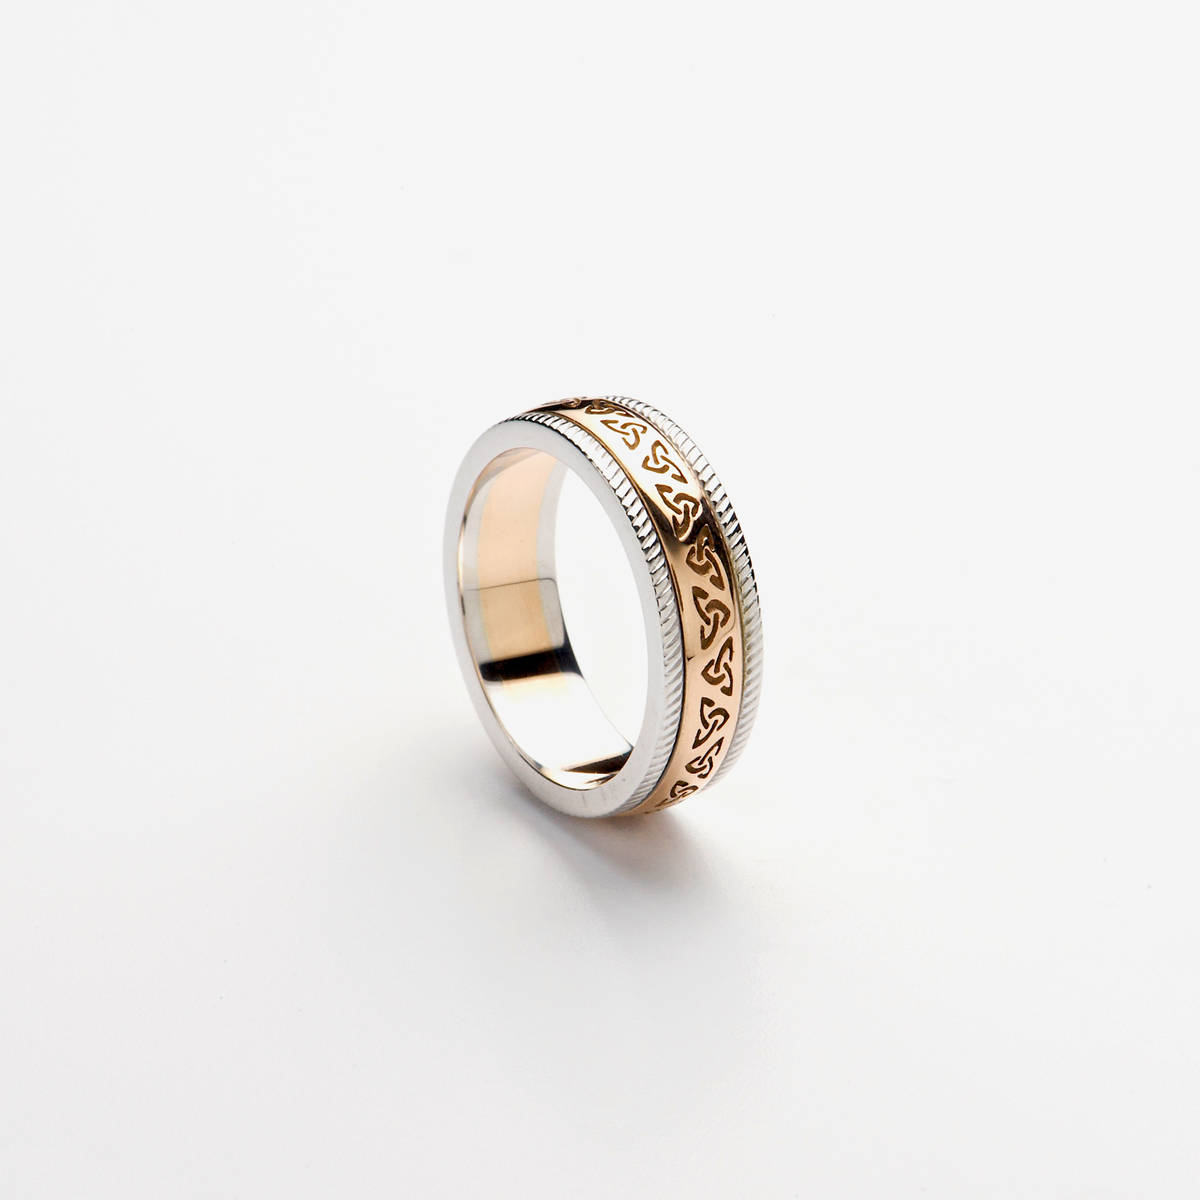 14ct rose gold wedding band with rose gold recessed Trinity Knot Design centre and heavy white gold rims.  Profile: D-Shape  Note: This ring has a rose gold centre, not yellow gold as in the image. Available in yellow gold also upon request.